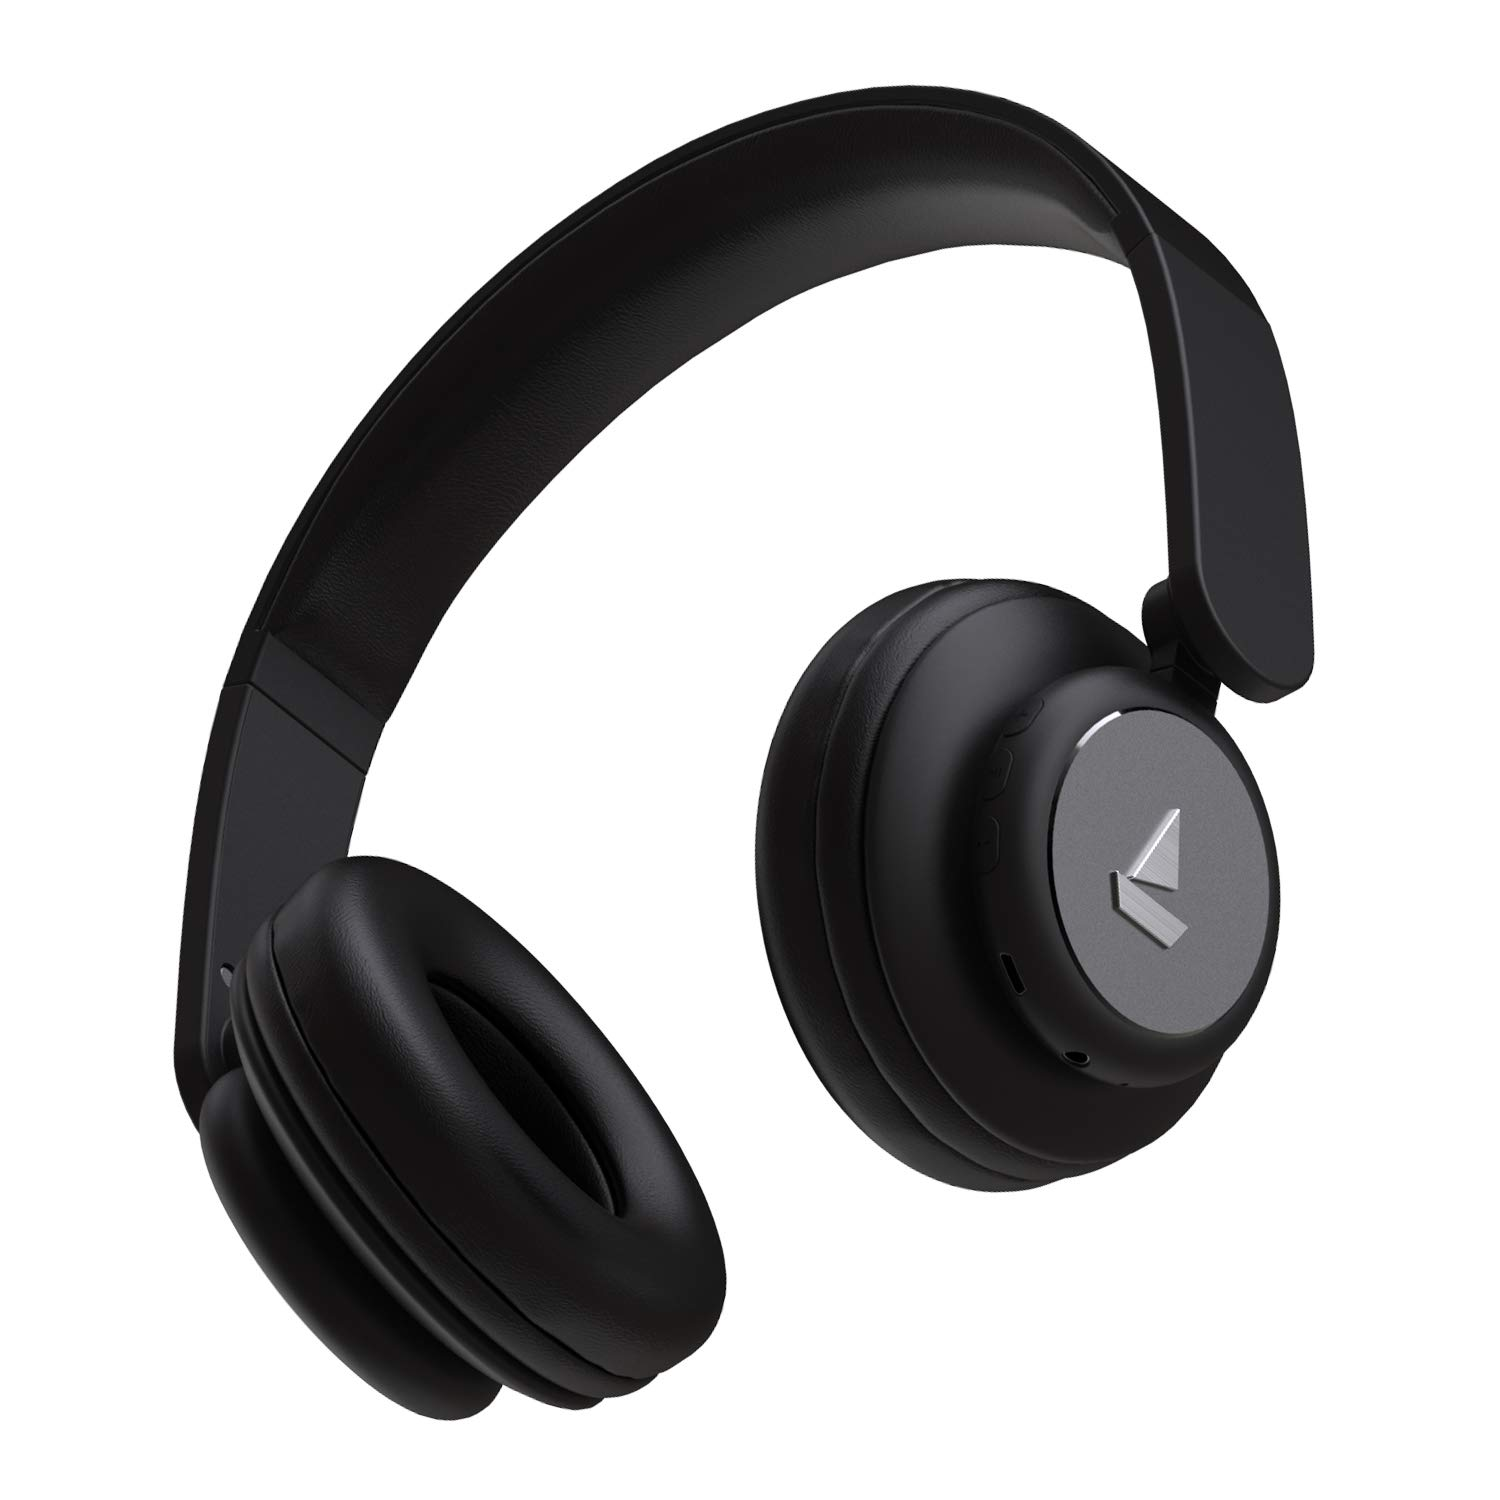 Boat Rockerz 450 Wireless Bluetooth Headphone with Up to 15H Playback, Adaptive Lightweight Design, Immersive Audio Easy Access Controls and Dual Mode Compatibility(Luscious Black)